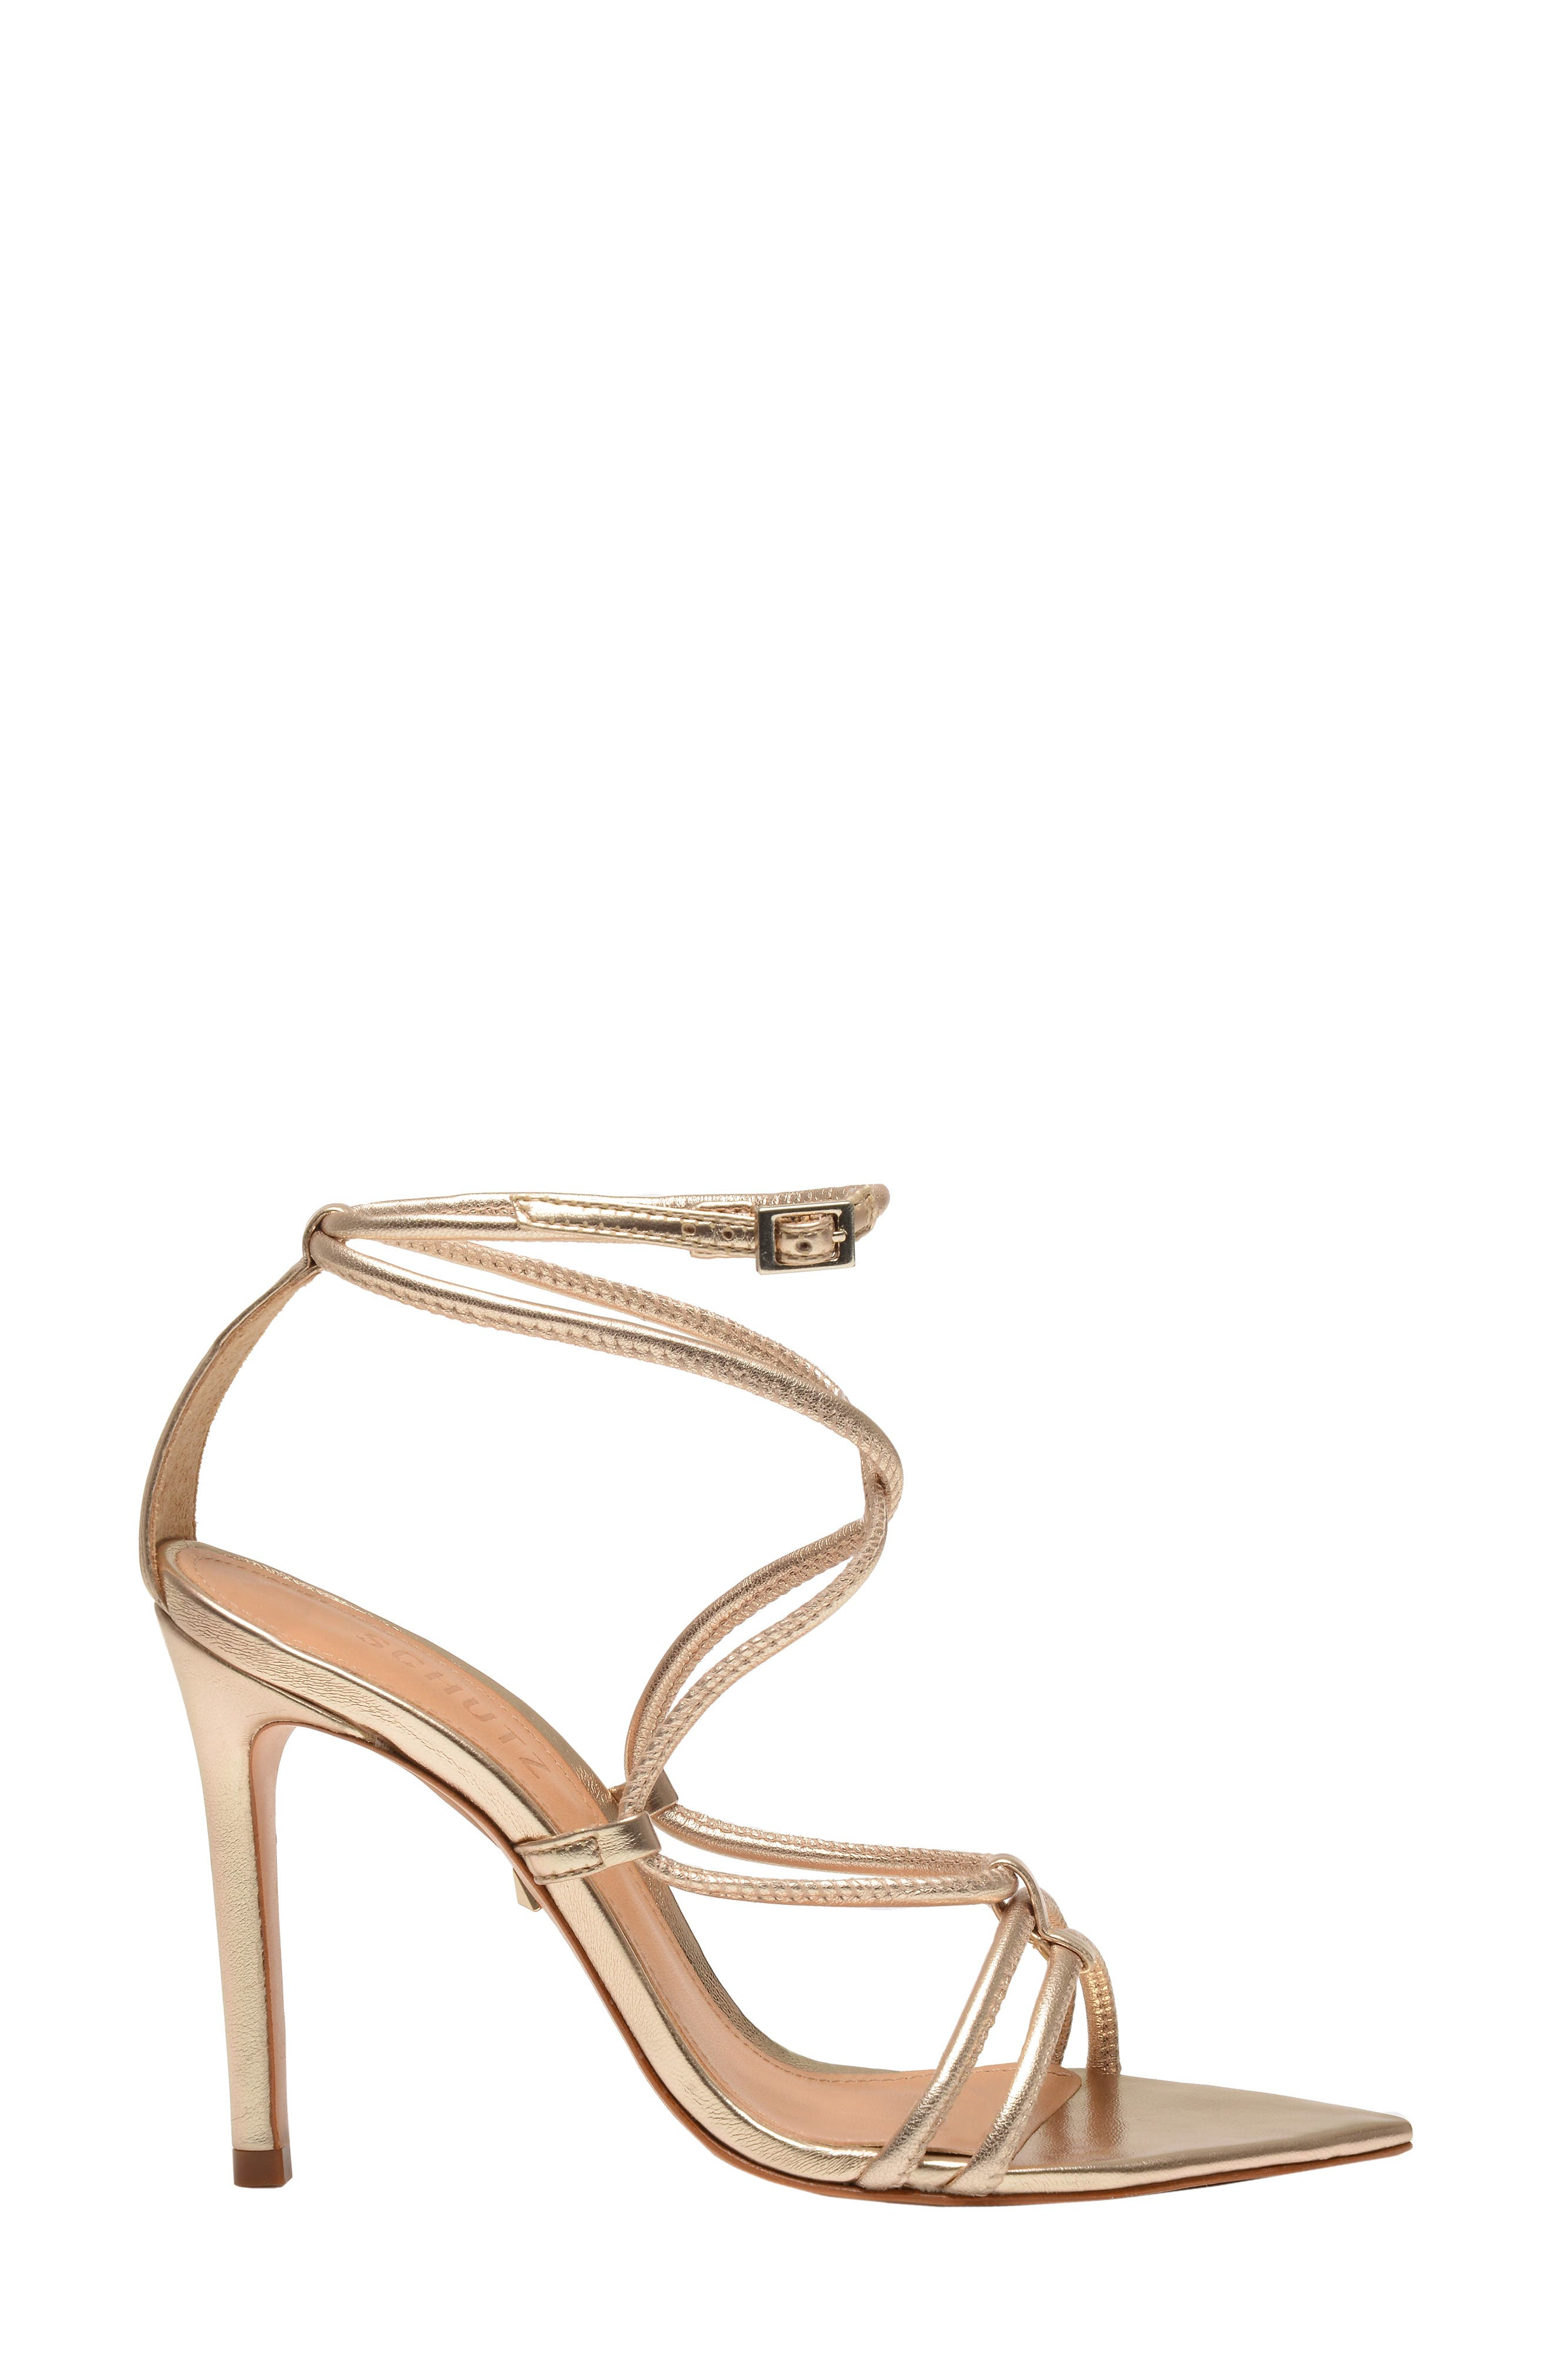 Evellyn Strappy Sandal,                             Alternate thumbnail 3, color,                             PLATINA